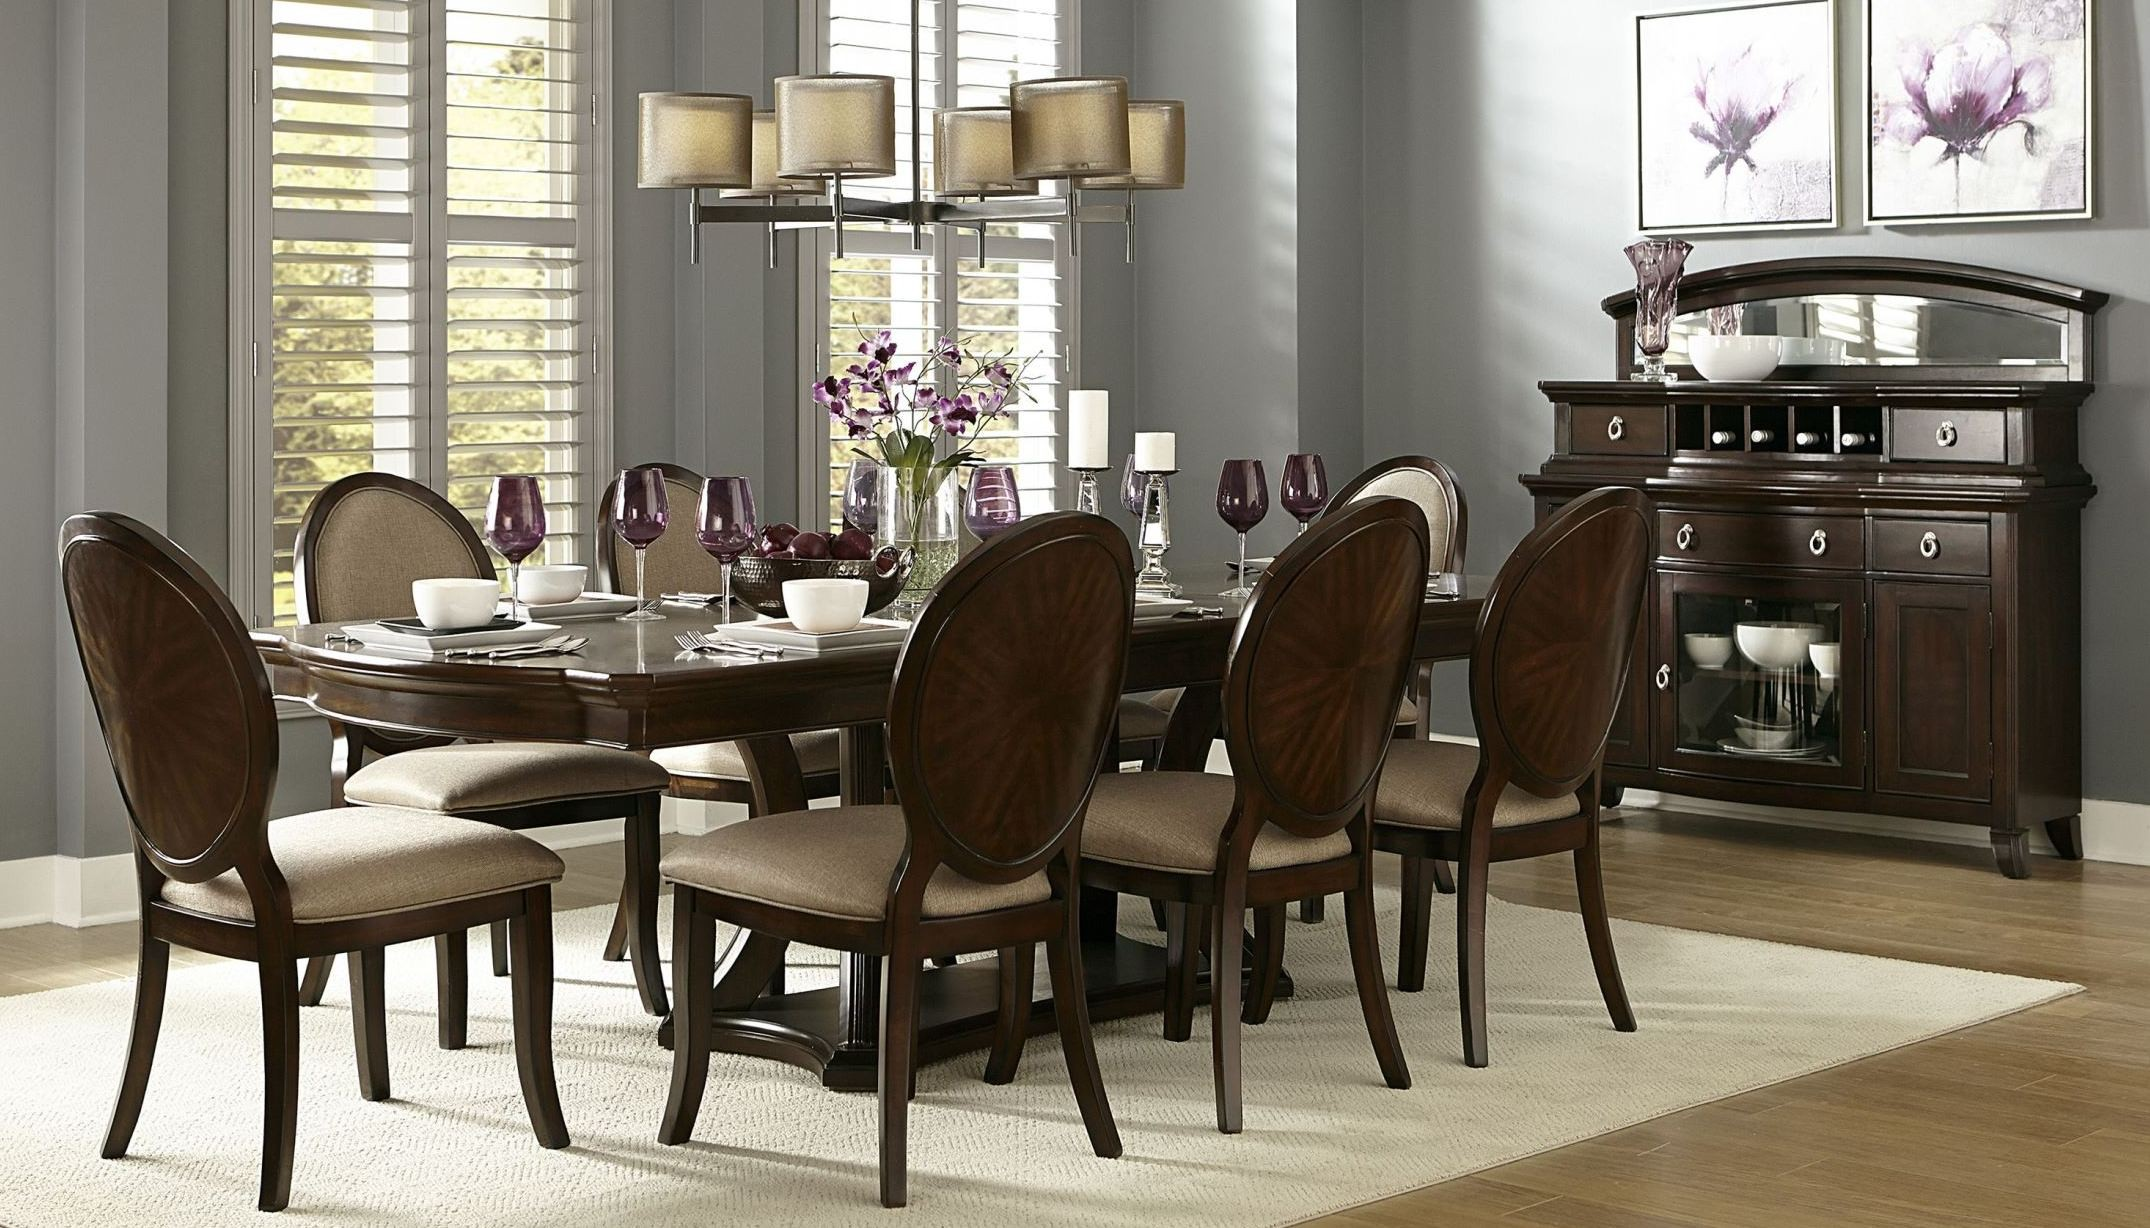 Delavan Rich Brown Cherry Extendable Dining Room Set From Homelegance 5251 1